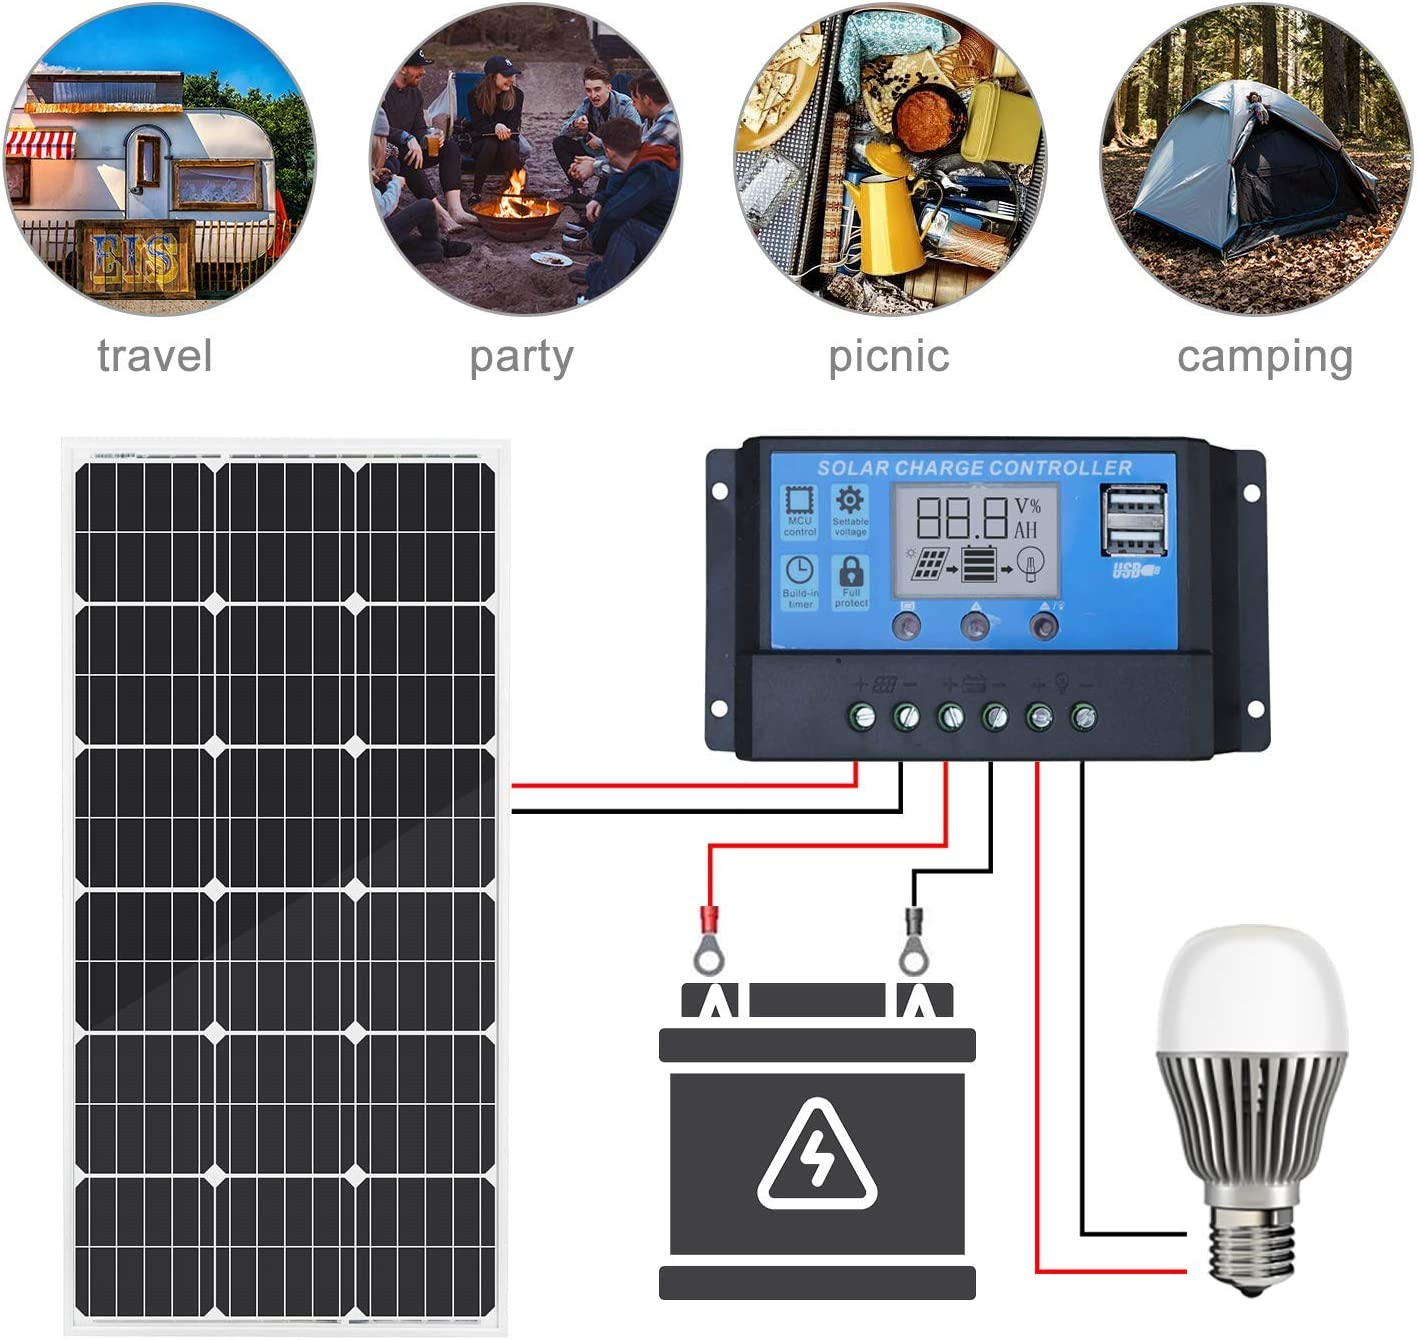 Lighting 20A Charge Controller for Off-Grid 12 Volt Battery System Boat ECO-WORTHY 12 Volt 100 Watt Monocrystalline Panels System RV